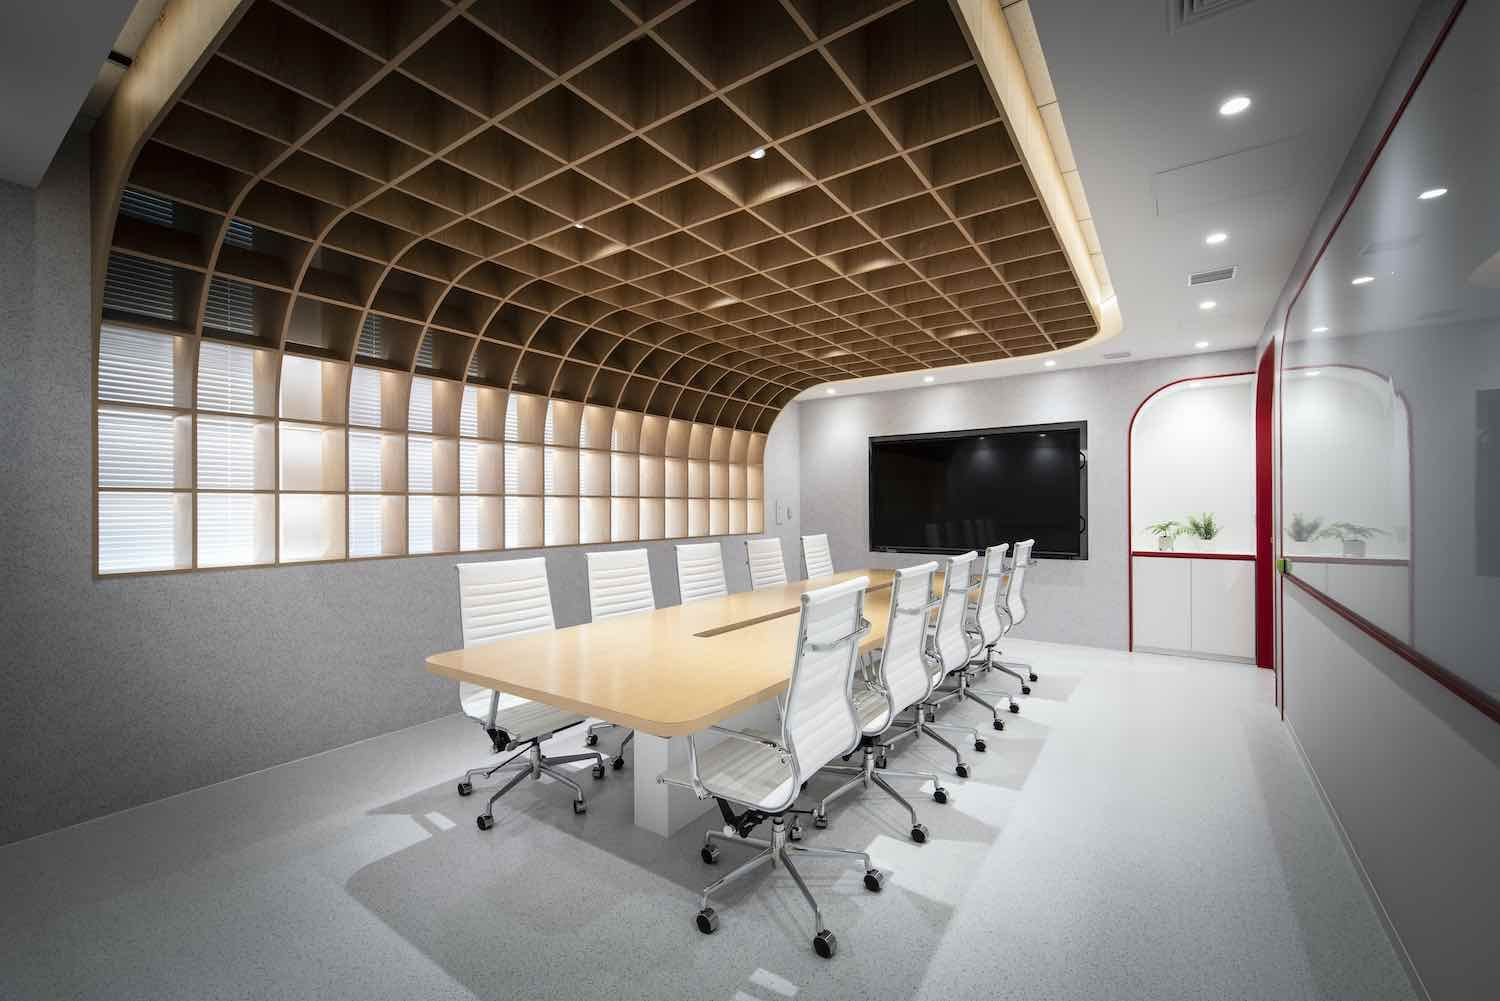 Fontworks Inc Tokyo Head Office Designed By Prism Design In 2020 Cafe Interior Design Office Design Design